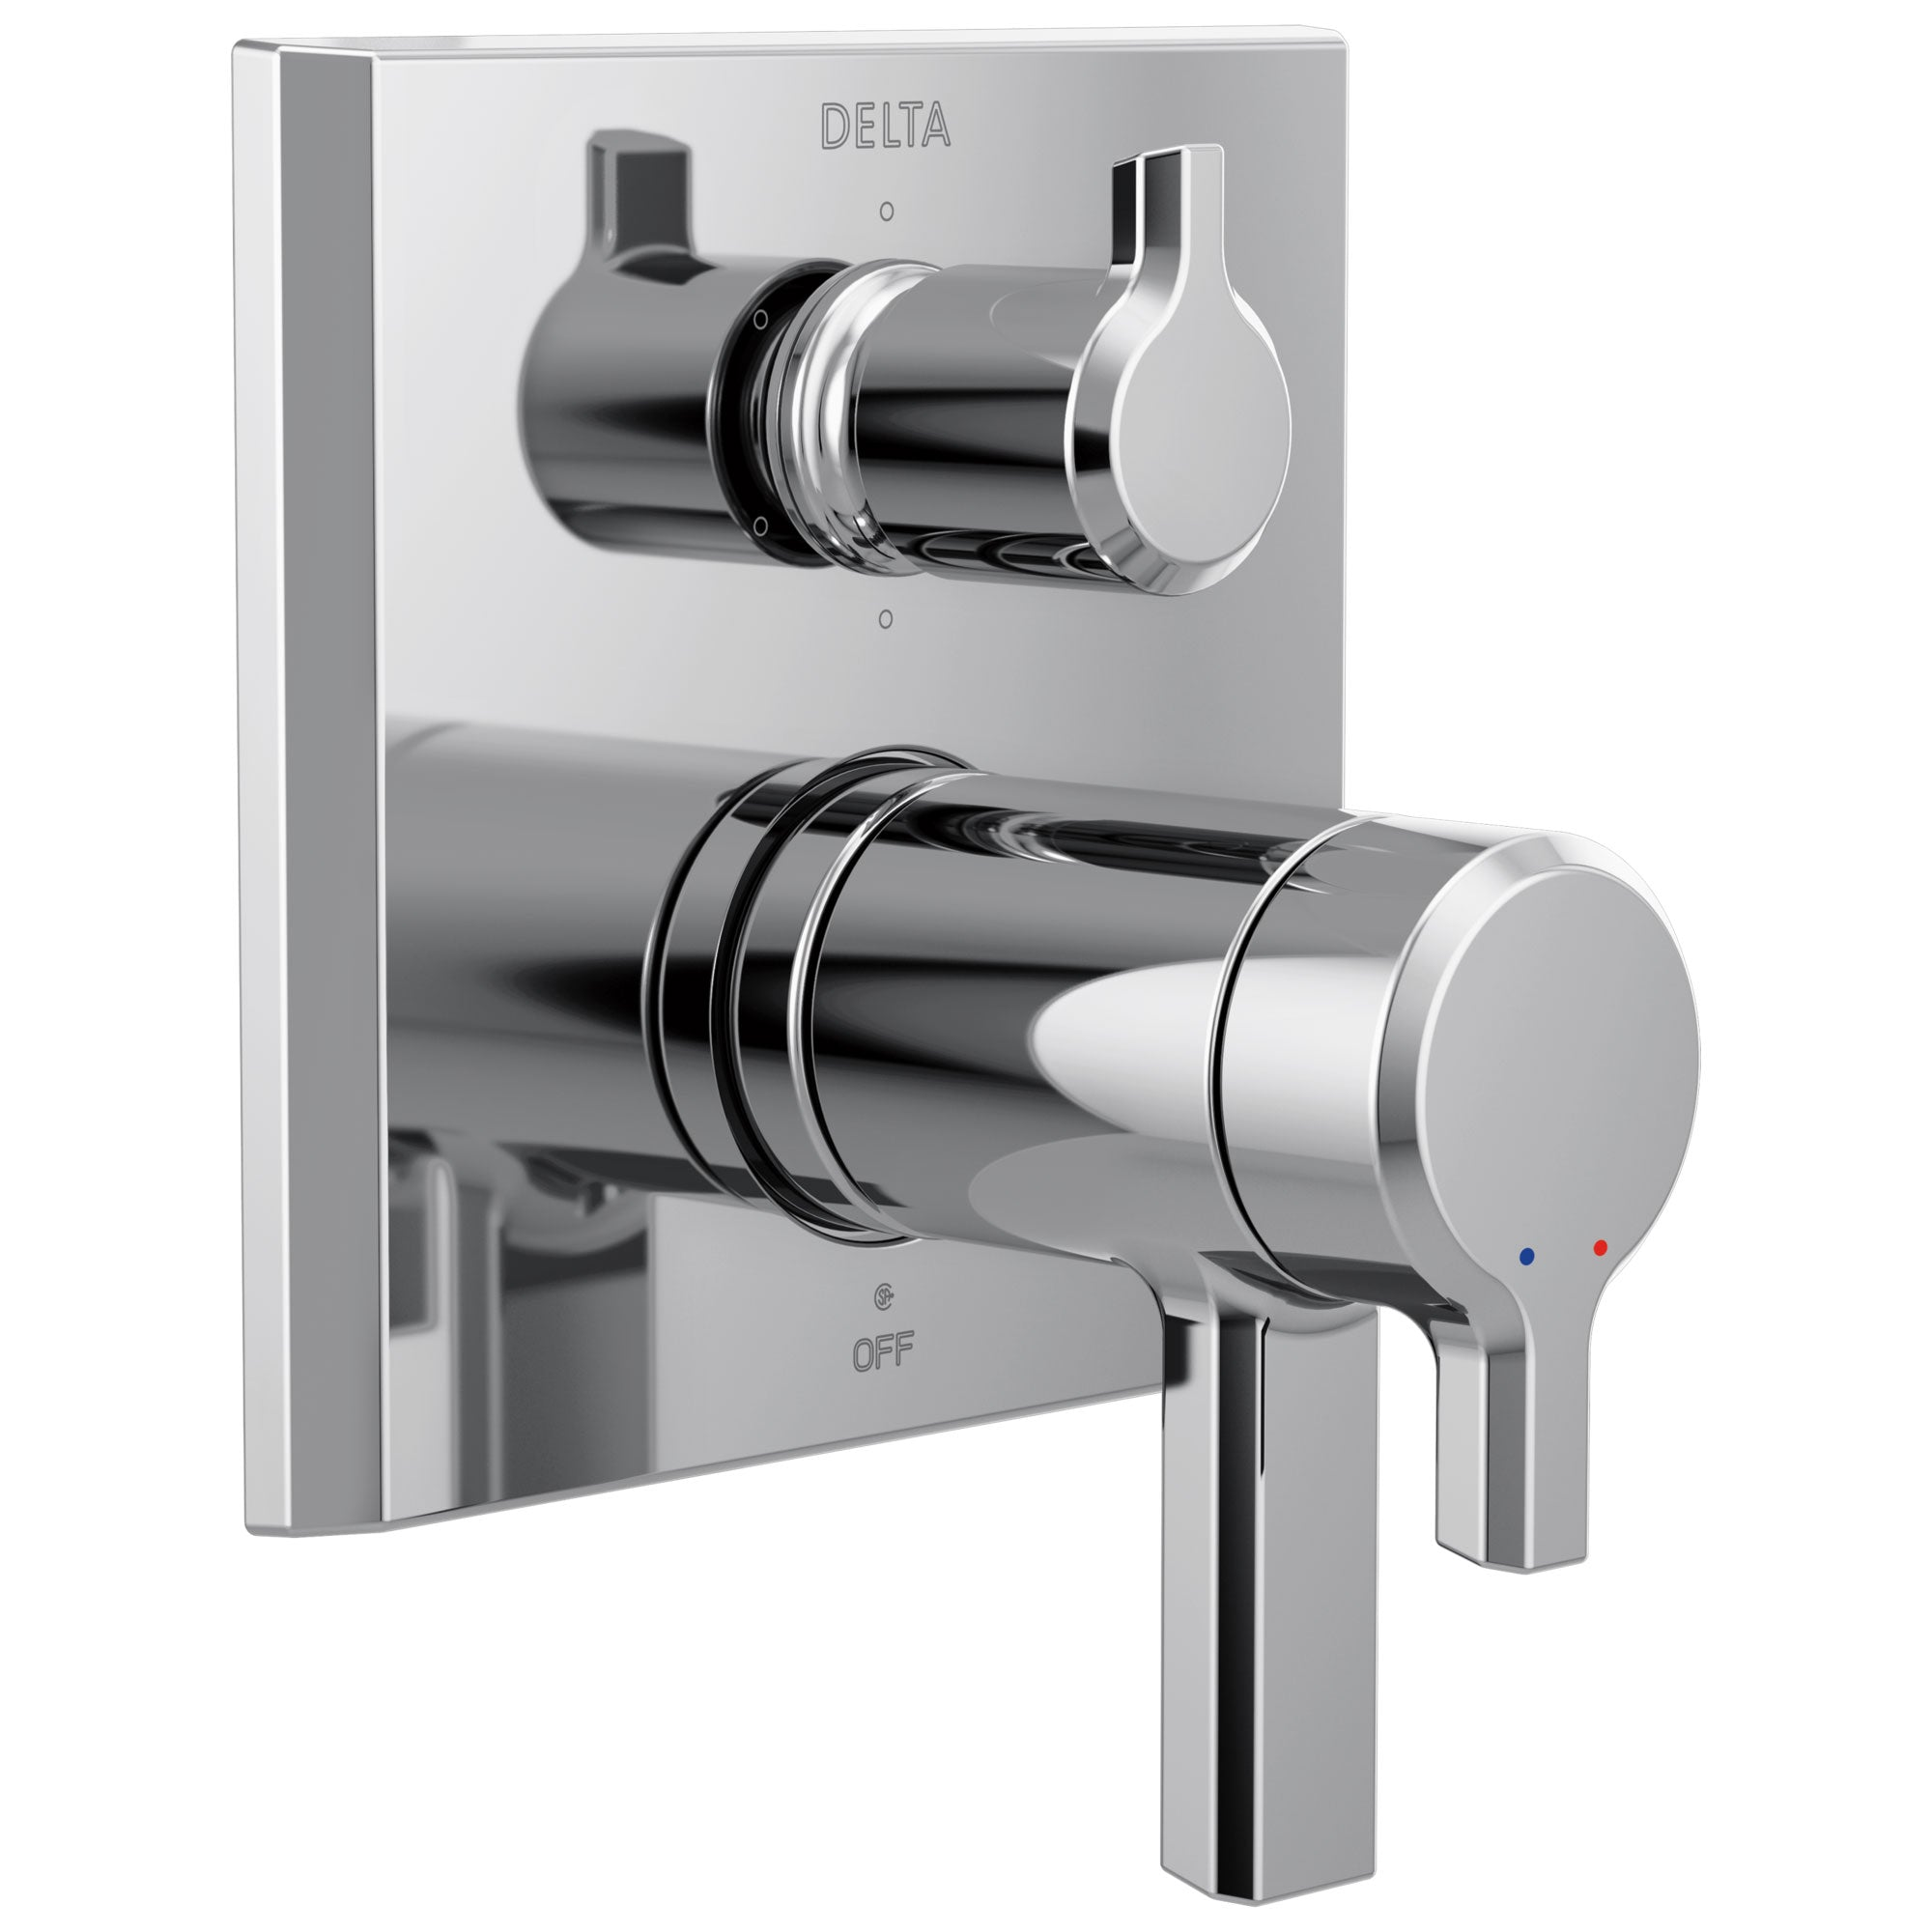 Delta Pivotal Chrome Finish TempAssure 17T Series Shower Control Trim with 6-Setting Integrated Diverter (Requires Valve) DT27T999